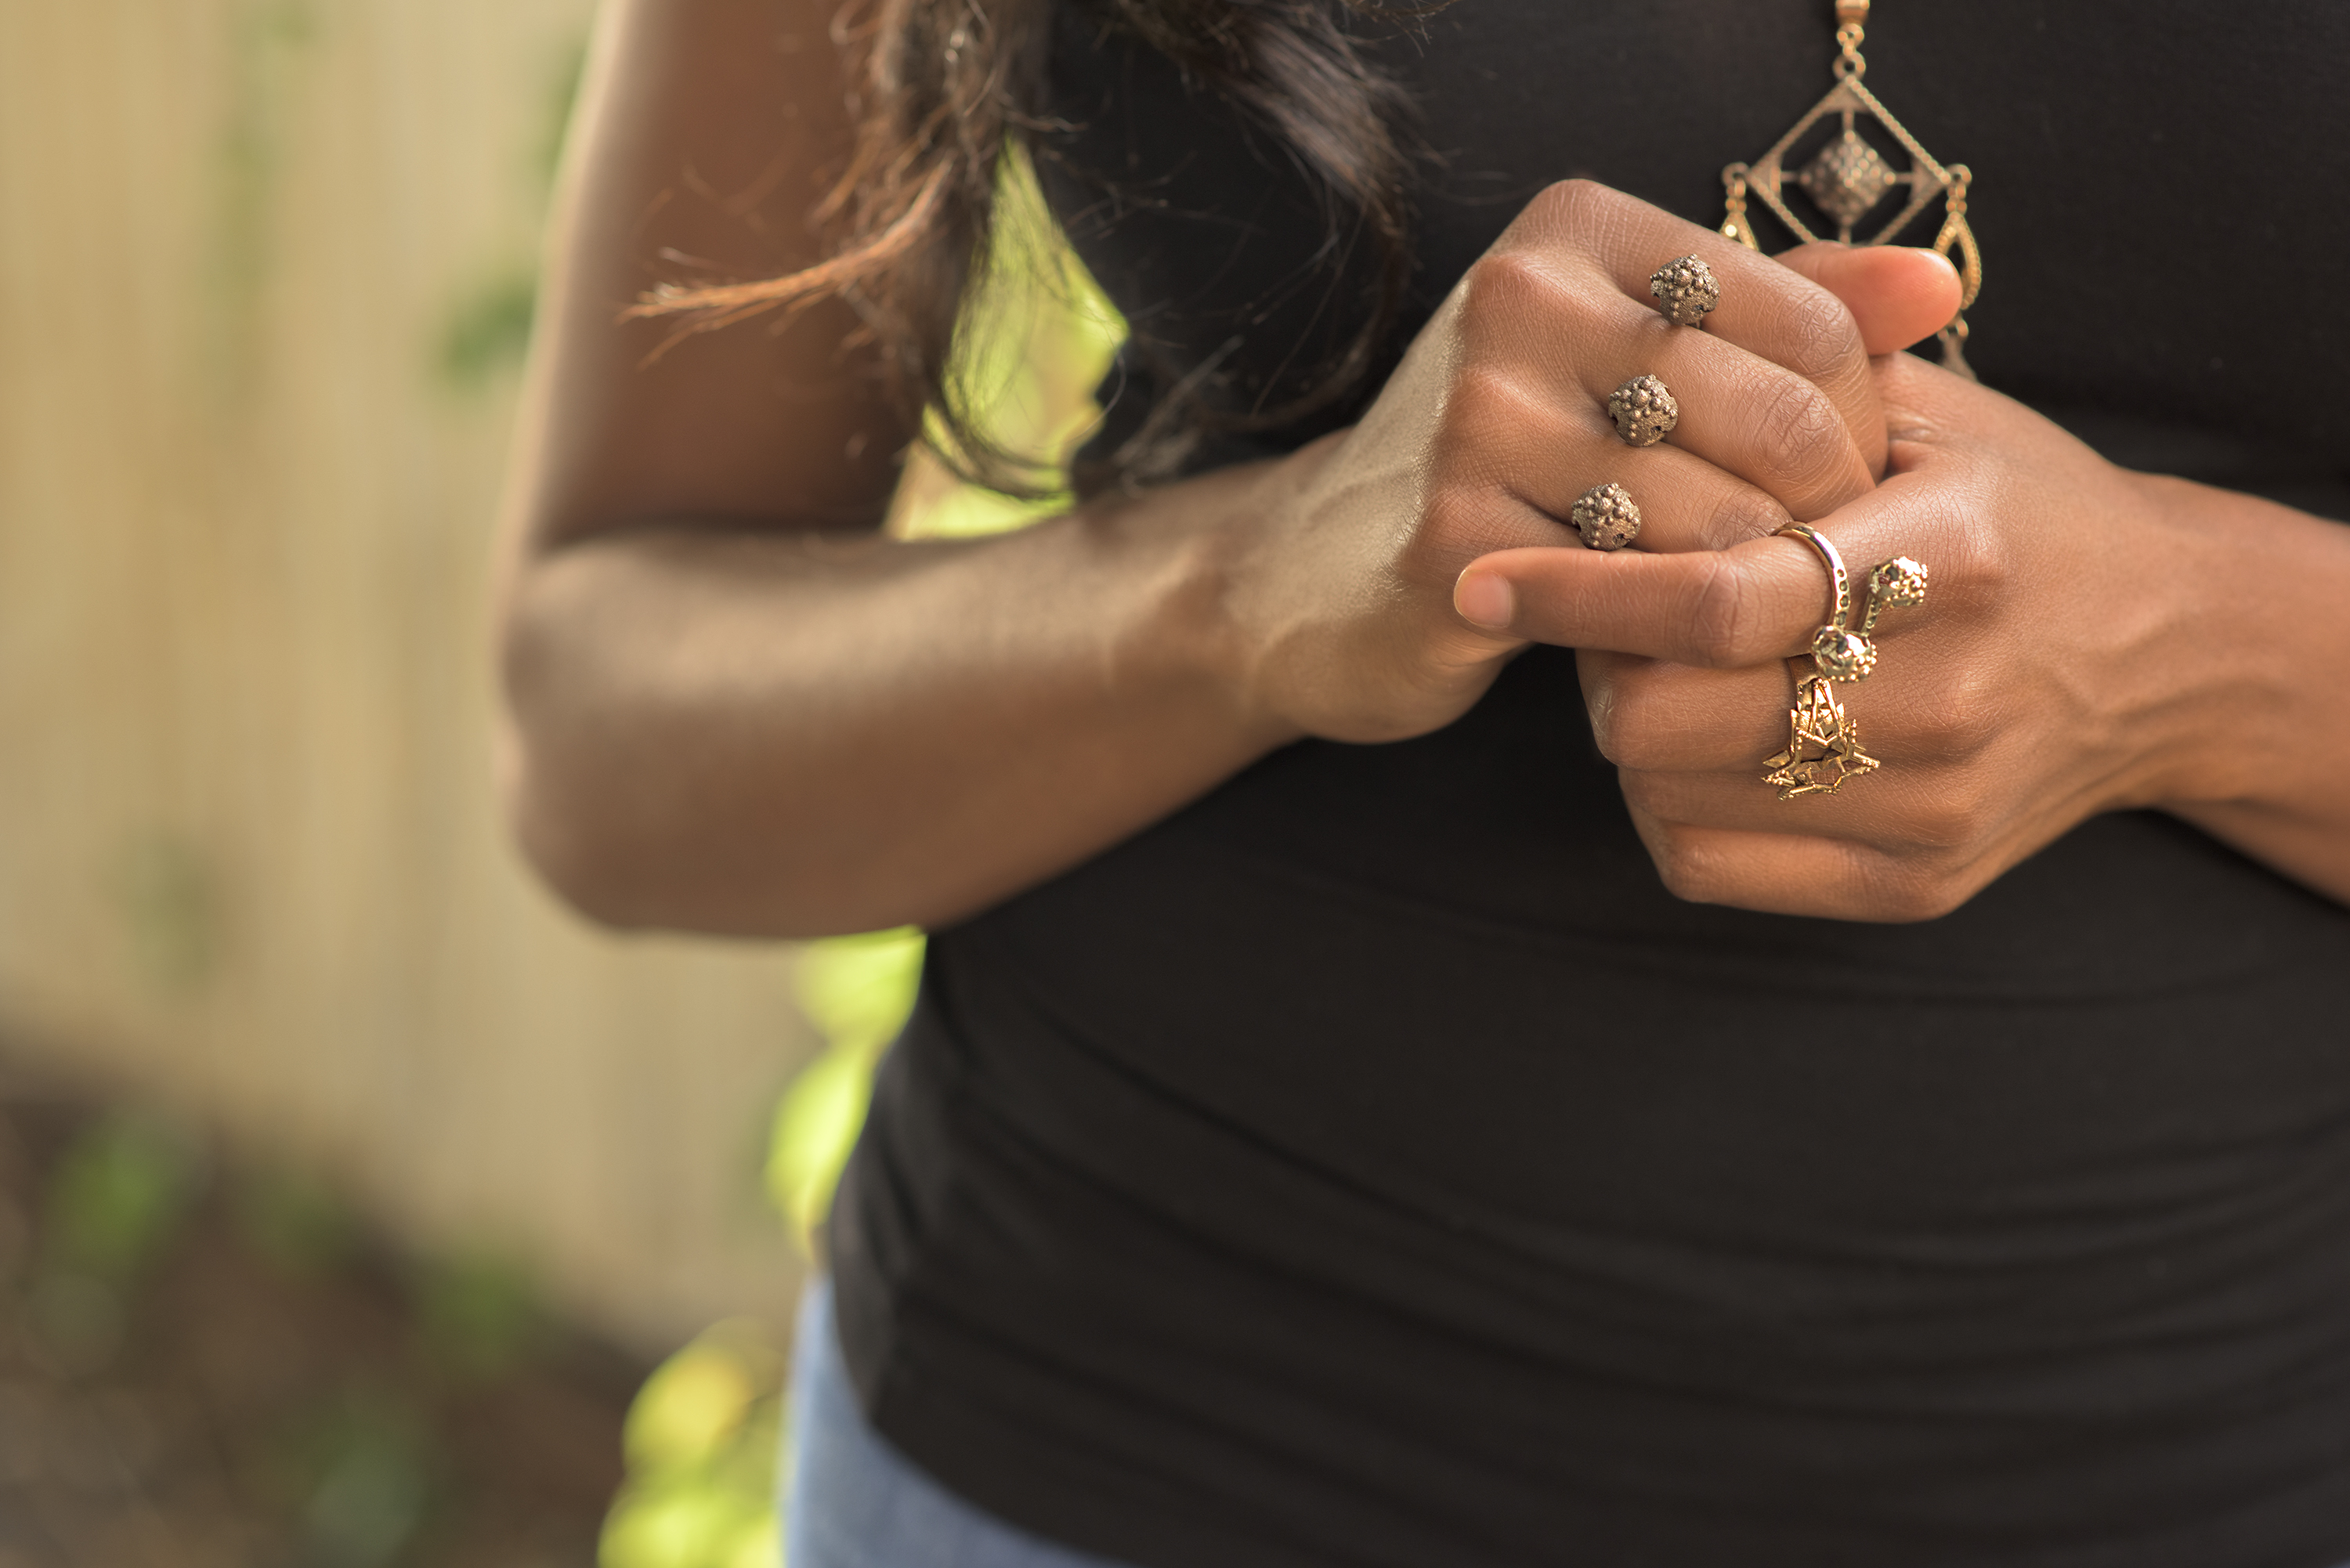 Falkora jewelry displayed on a model's hands